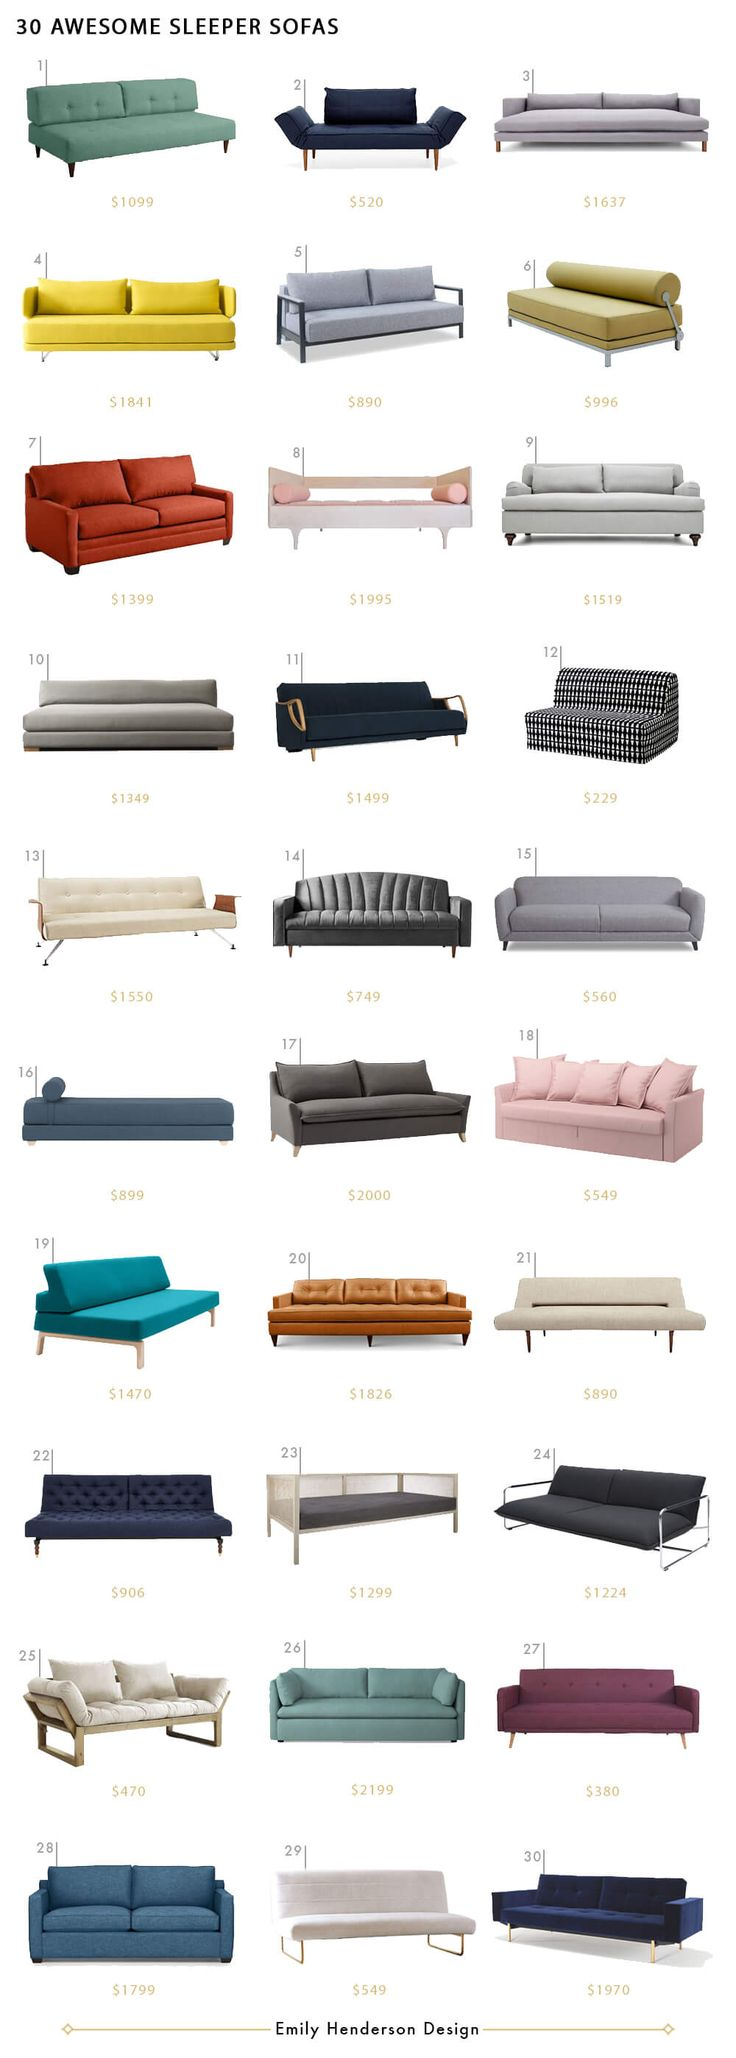 Chic Sleeper Sofas Emily Henderson Sofa Roundup Living Room